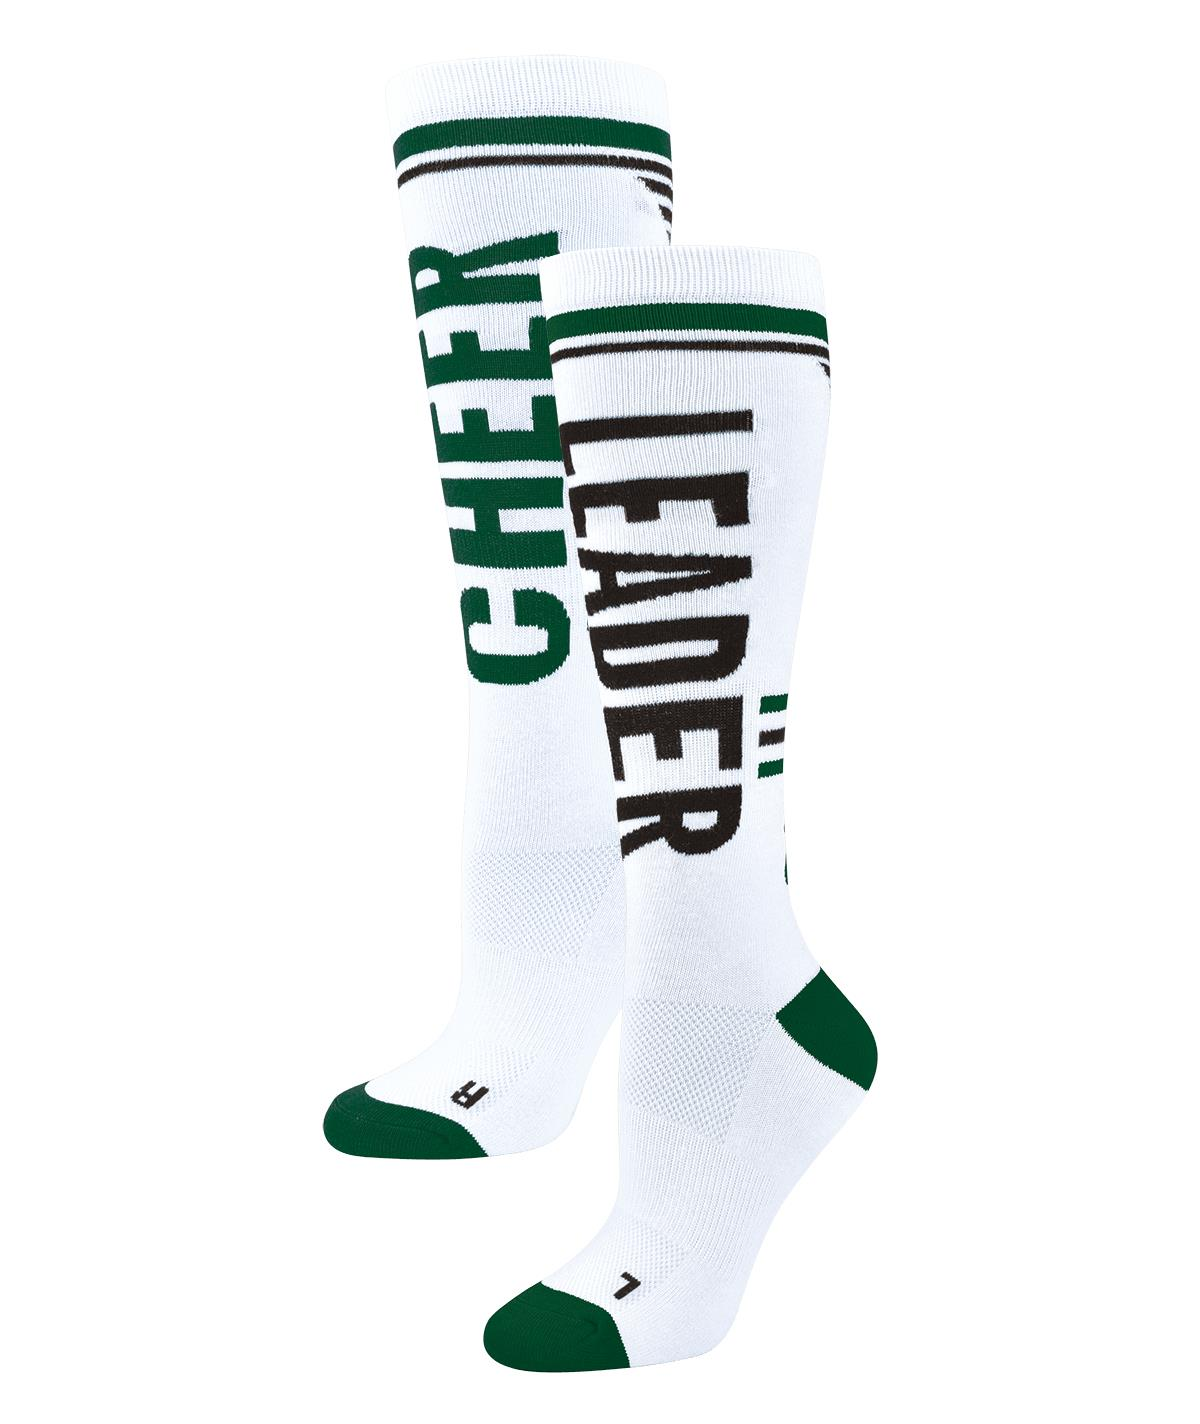 Chasse Knee-High Cheer Mix Sock